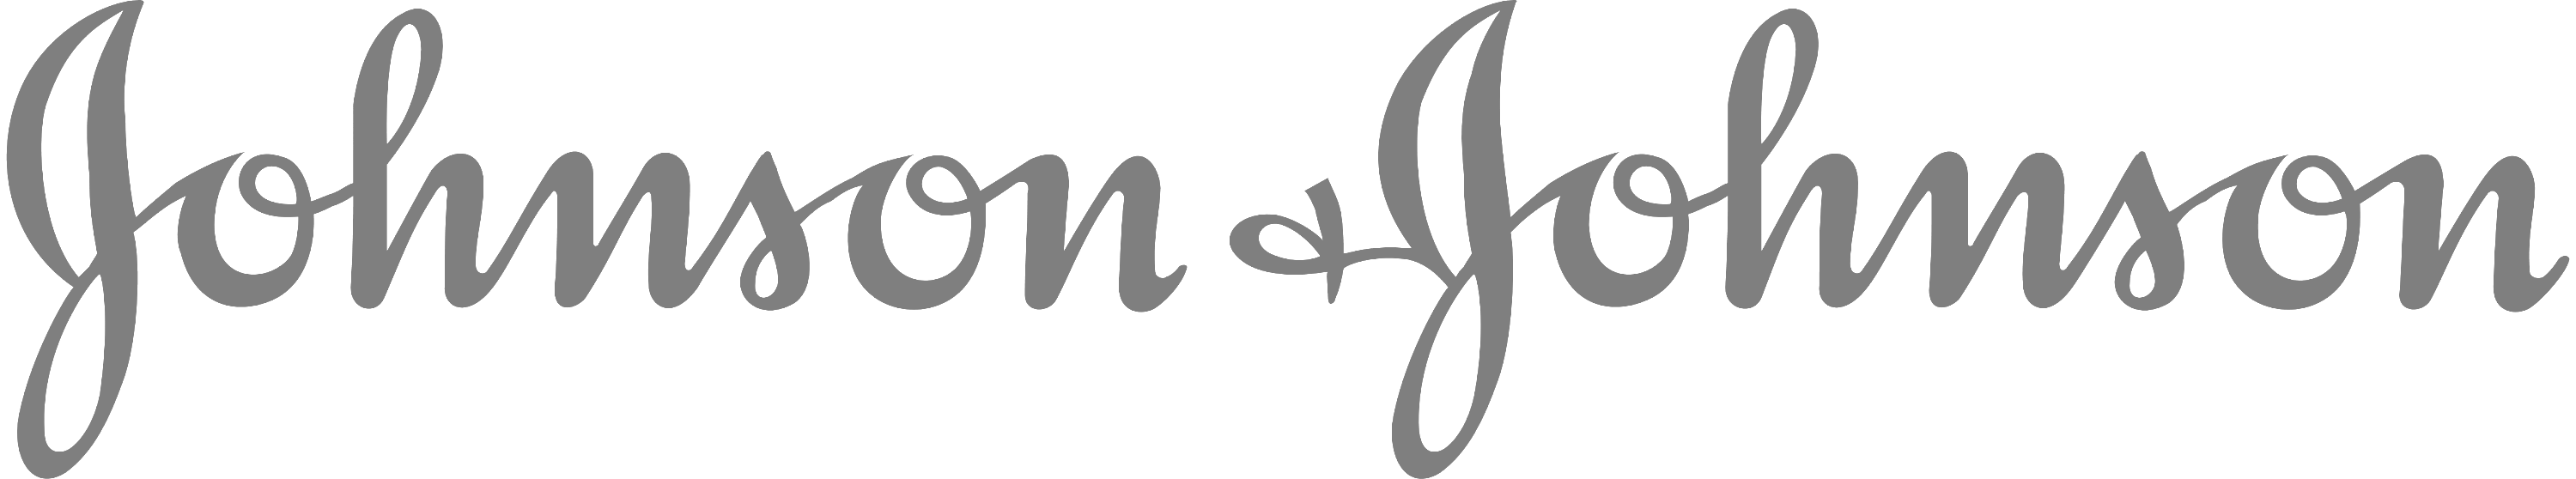 Johnson_and_Johnson_logo_edited